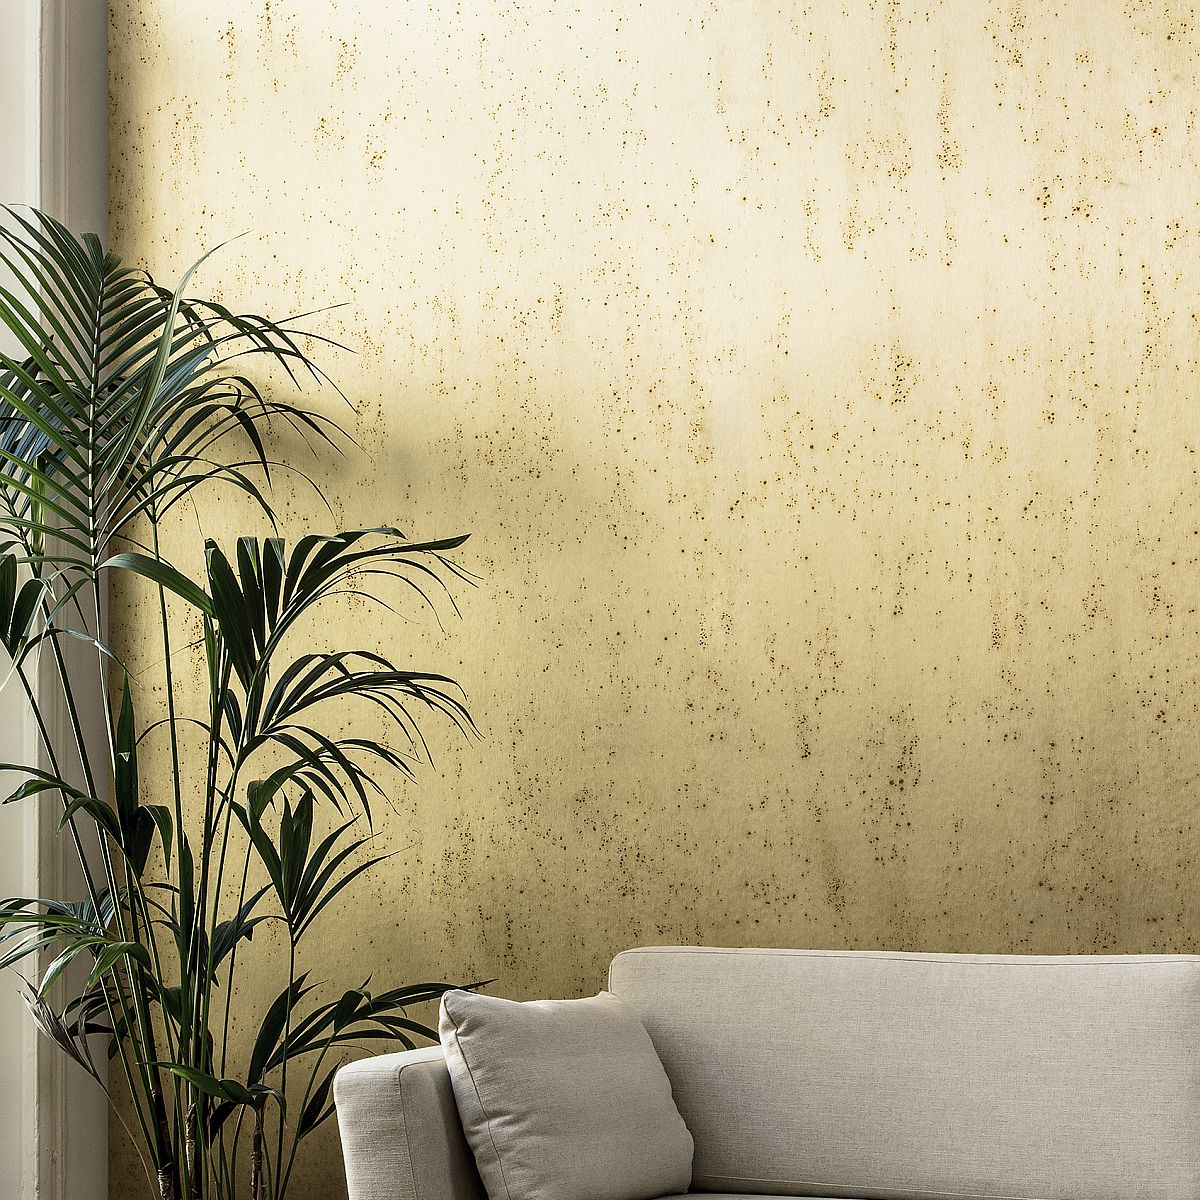 High-quality wallpapers and fabrics | wallpaper Arte METAL X 37516 ...